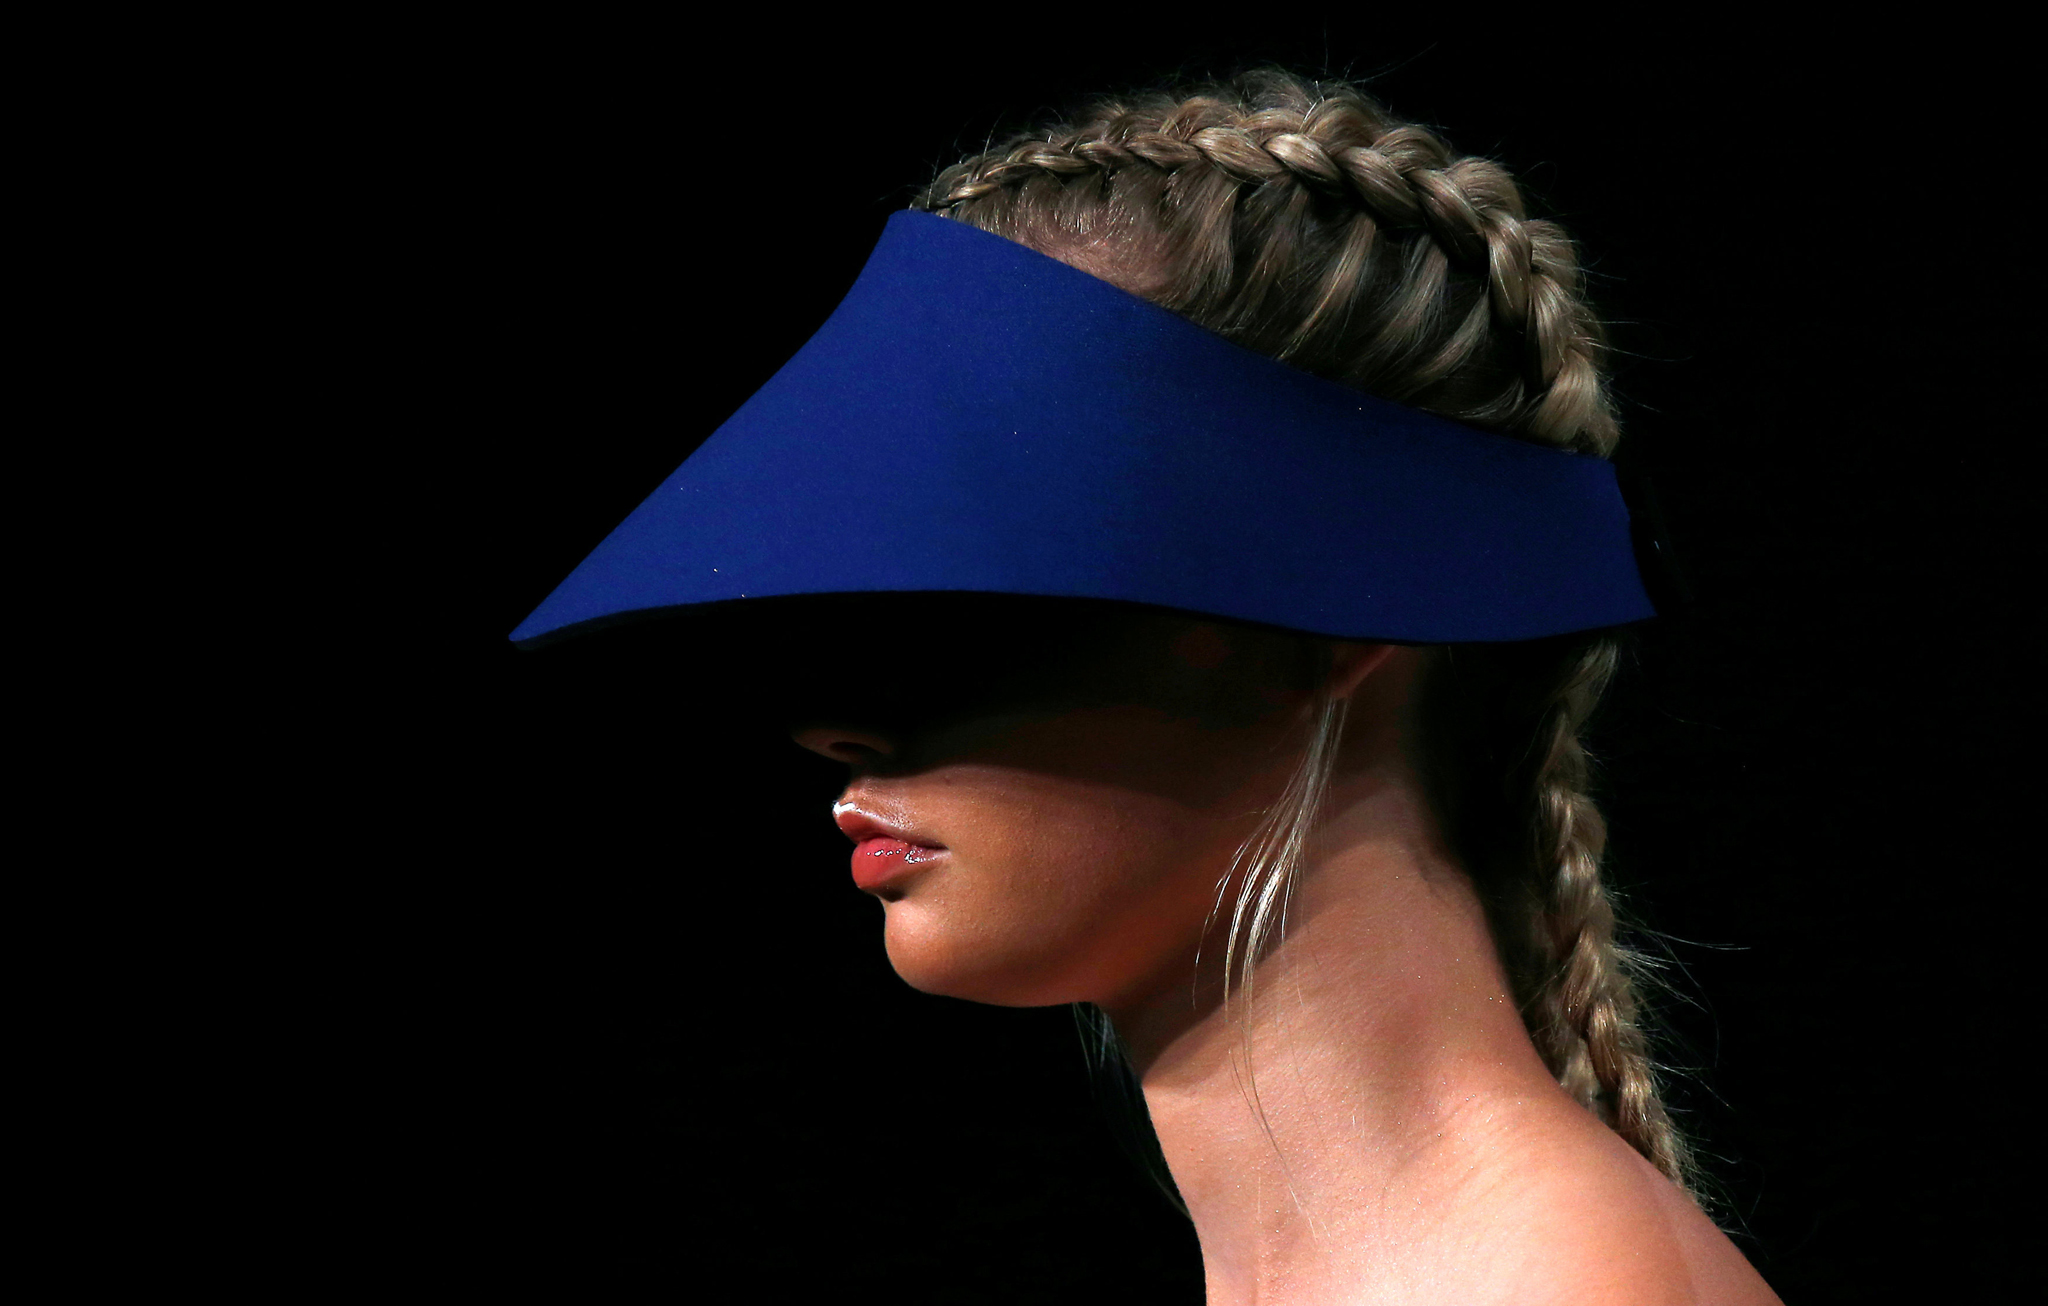 A model wears a hat as she presents a creation from the fashion label Bondi Bather during Australian Fashion week in Sydney, Australia, May 19, 2016. REUTERS/David Gray